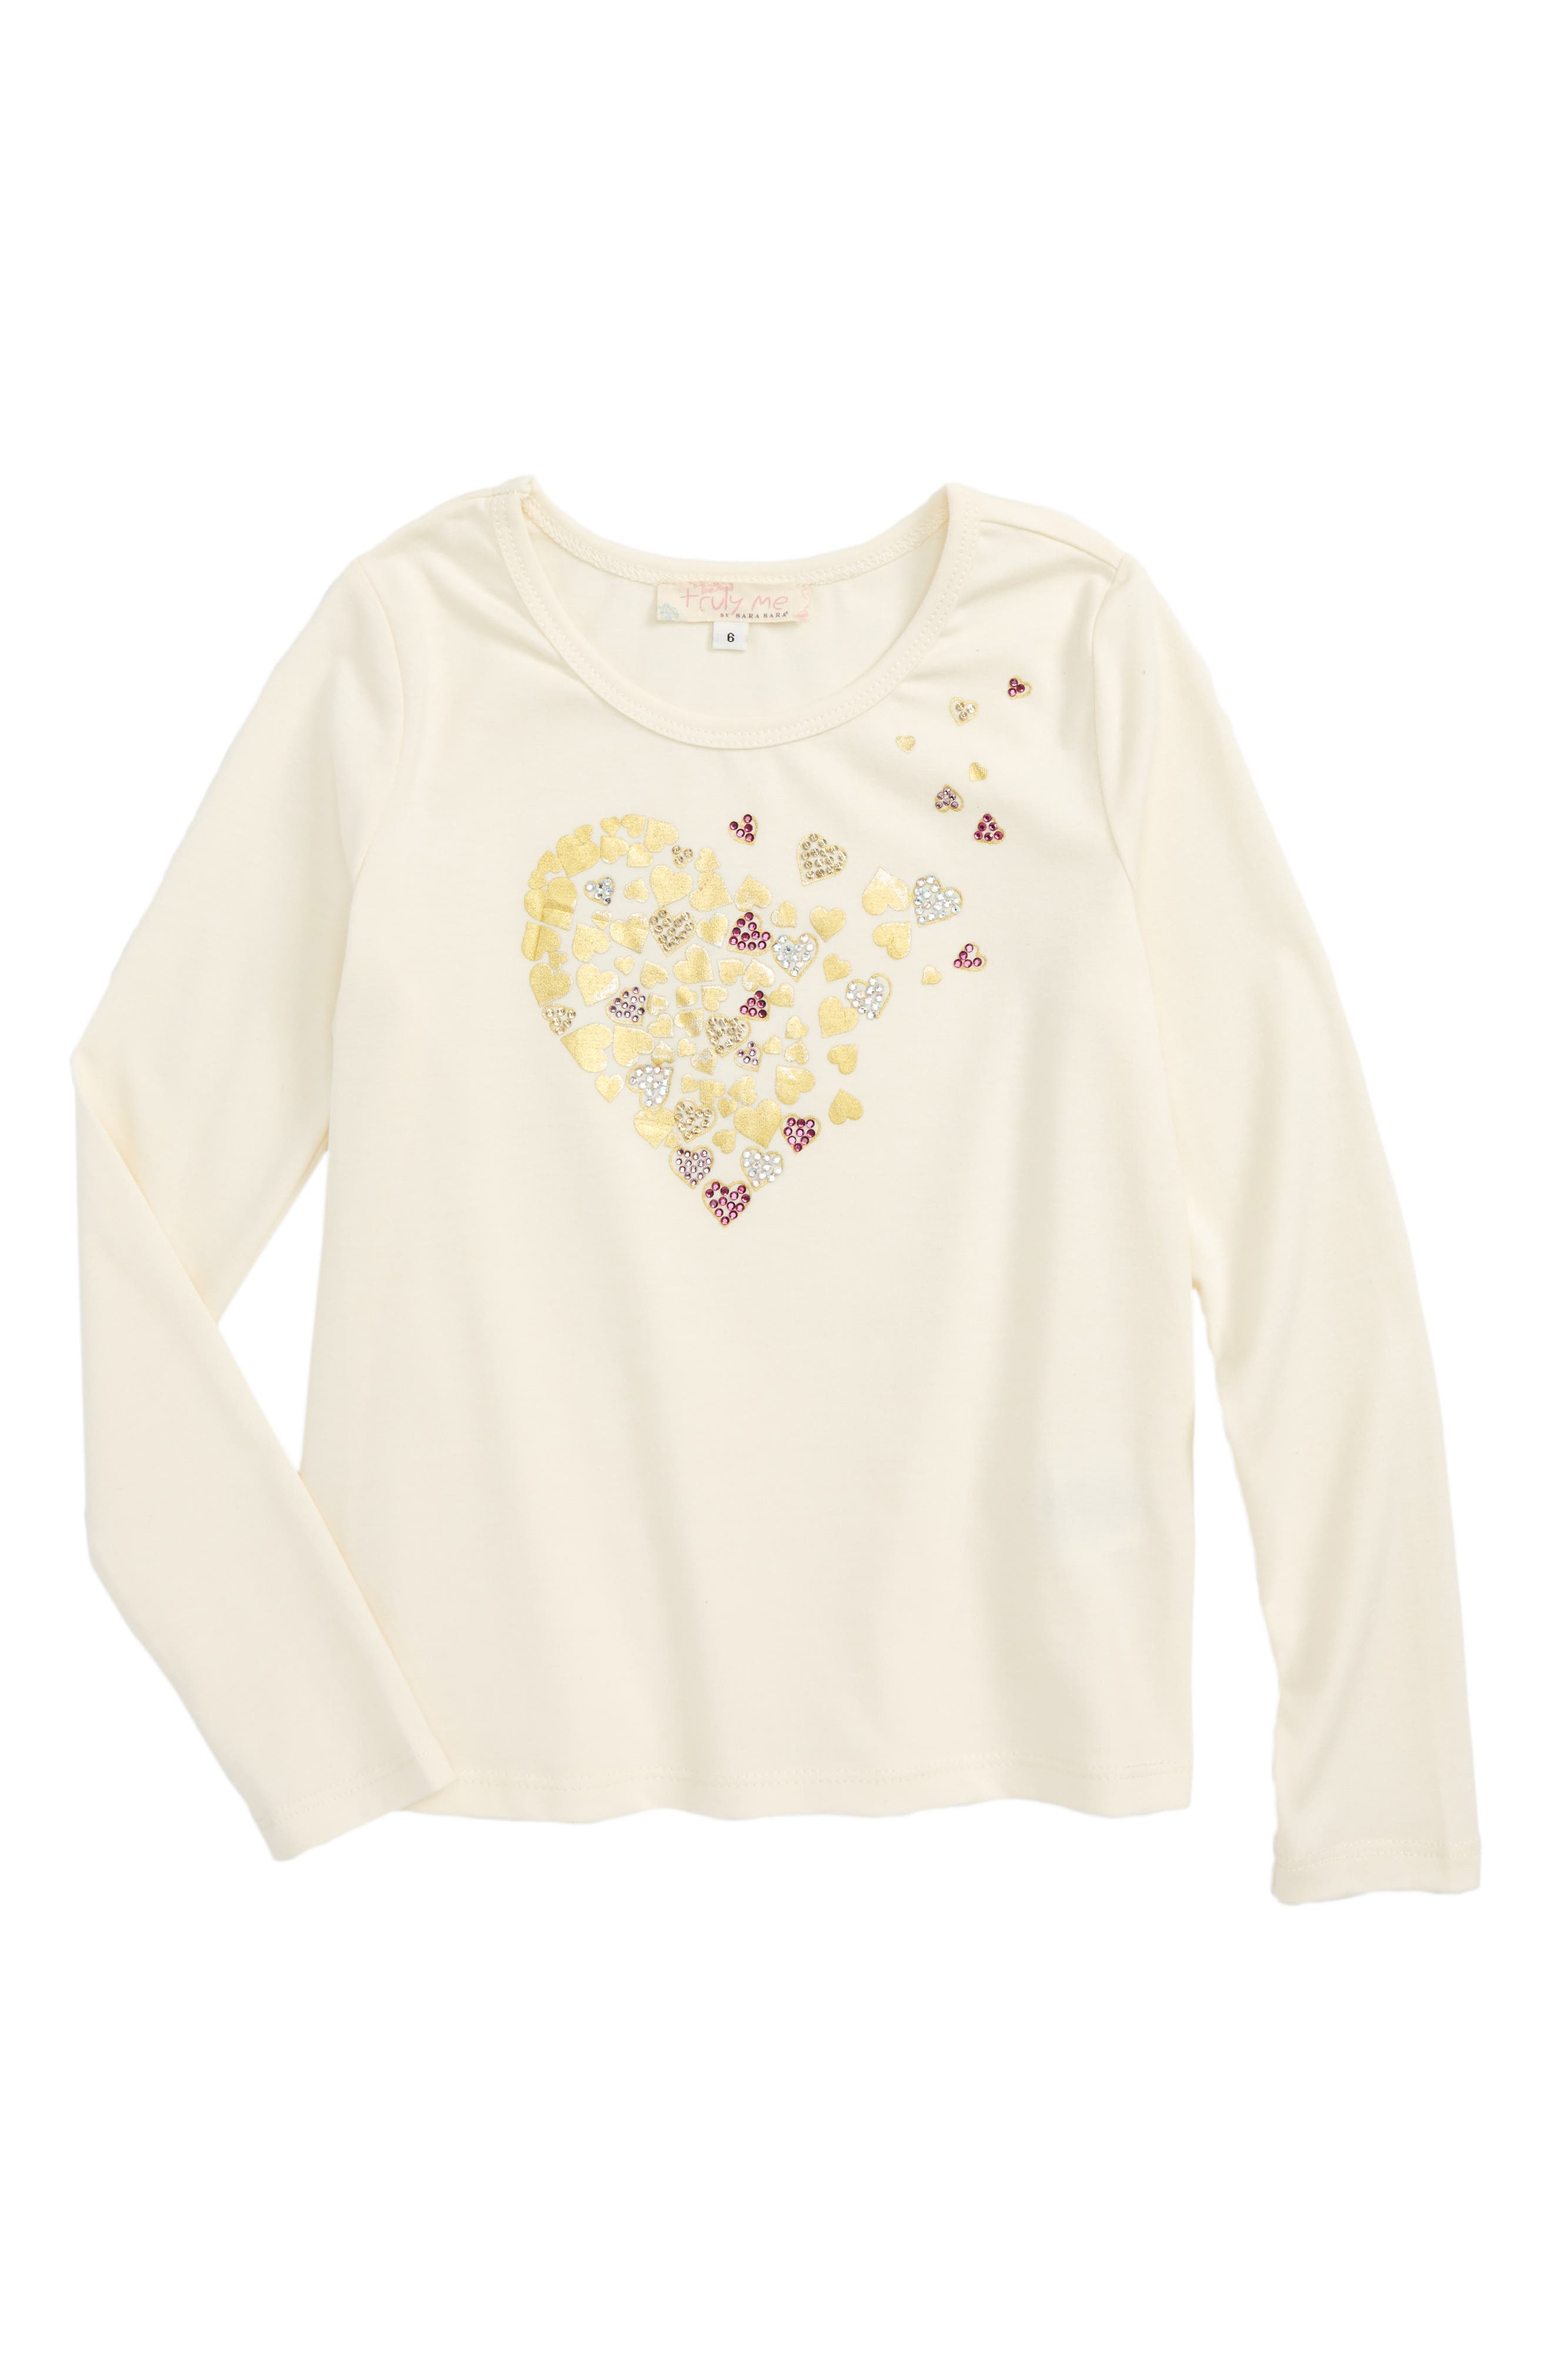 Alternate Image 1 Selected - Truly Me Heart Graphic Tee (Toddler Girls & Little Girls)